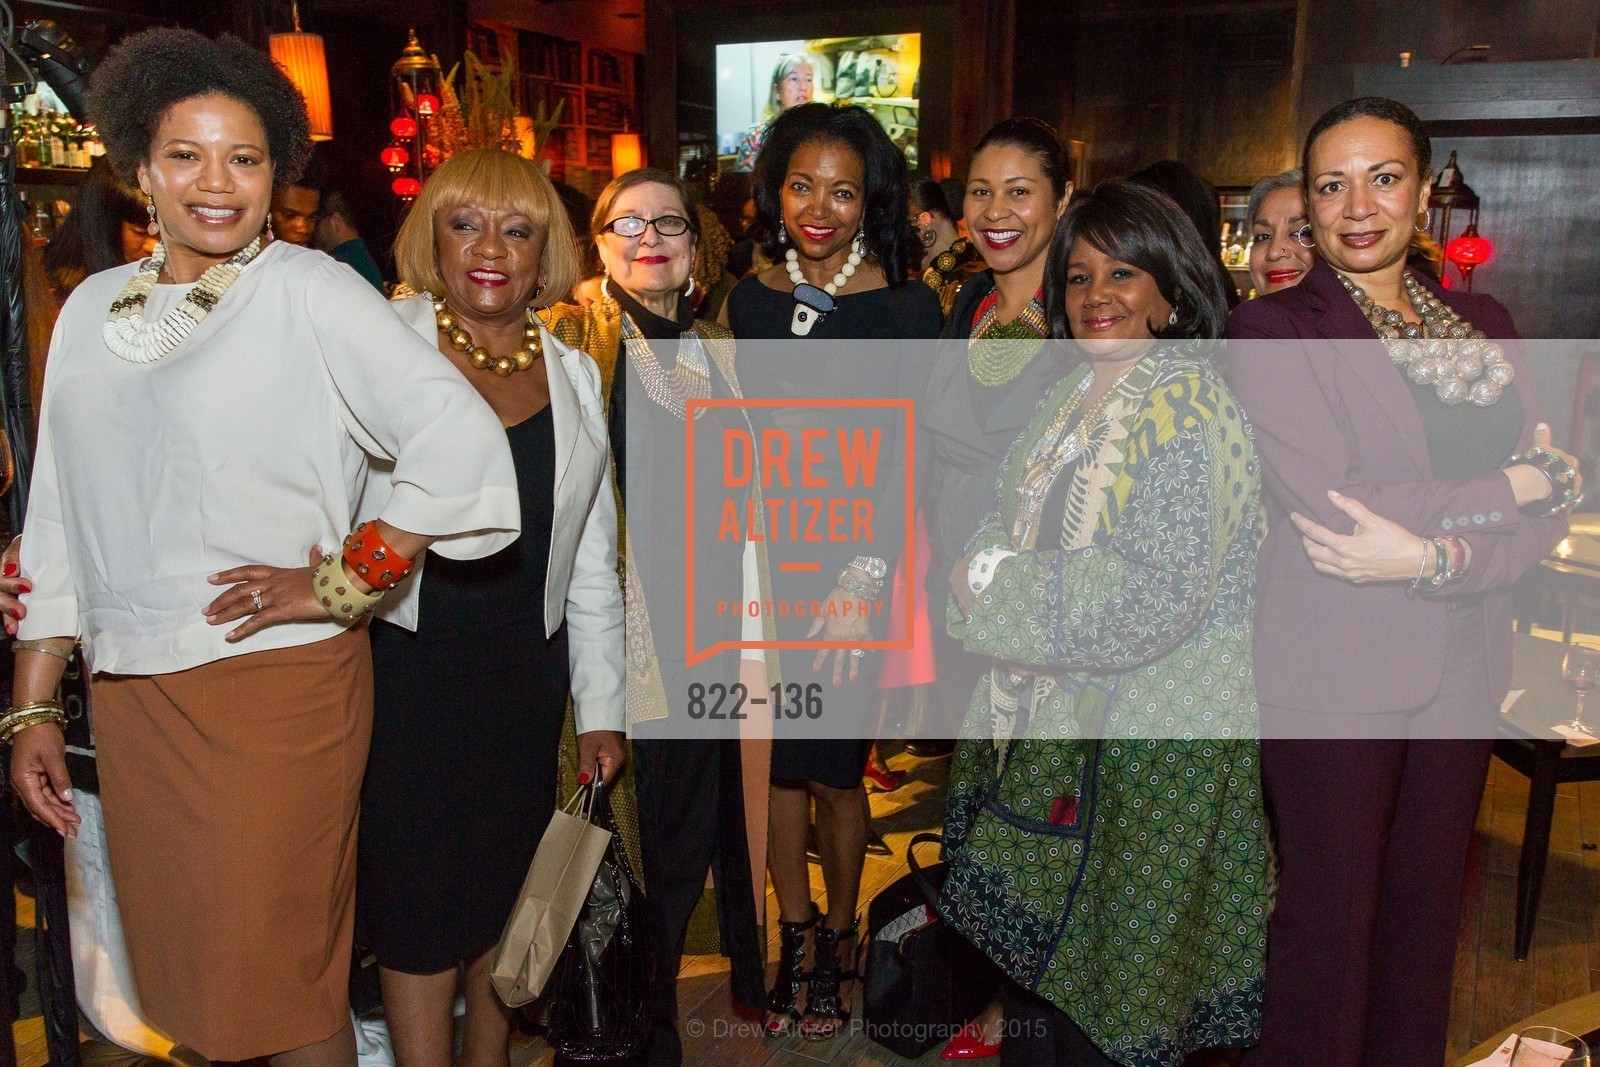 Brenda Wright, Masha Archer, Denise Bradley Tyson, London Breed, Carolyn Tyler, Diedre Levinton,  Inspired Luxe Launch Party hosted by Denise Bradley-Tyson, MatrixFillmore, May 27th, 2015,Drew Altizer, Drew Altizer Photography, full-service agency, private events, San Francisco photographer, photographer california